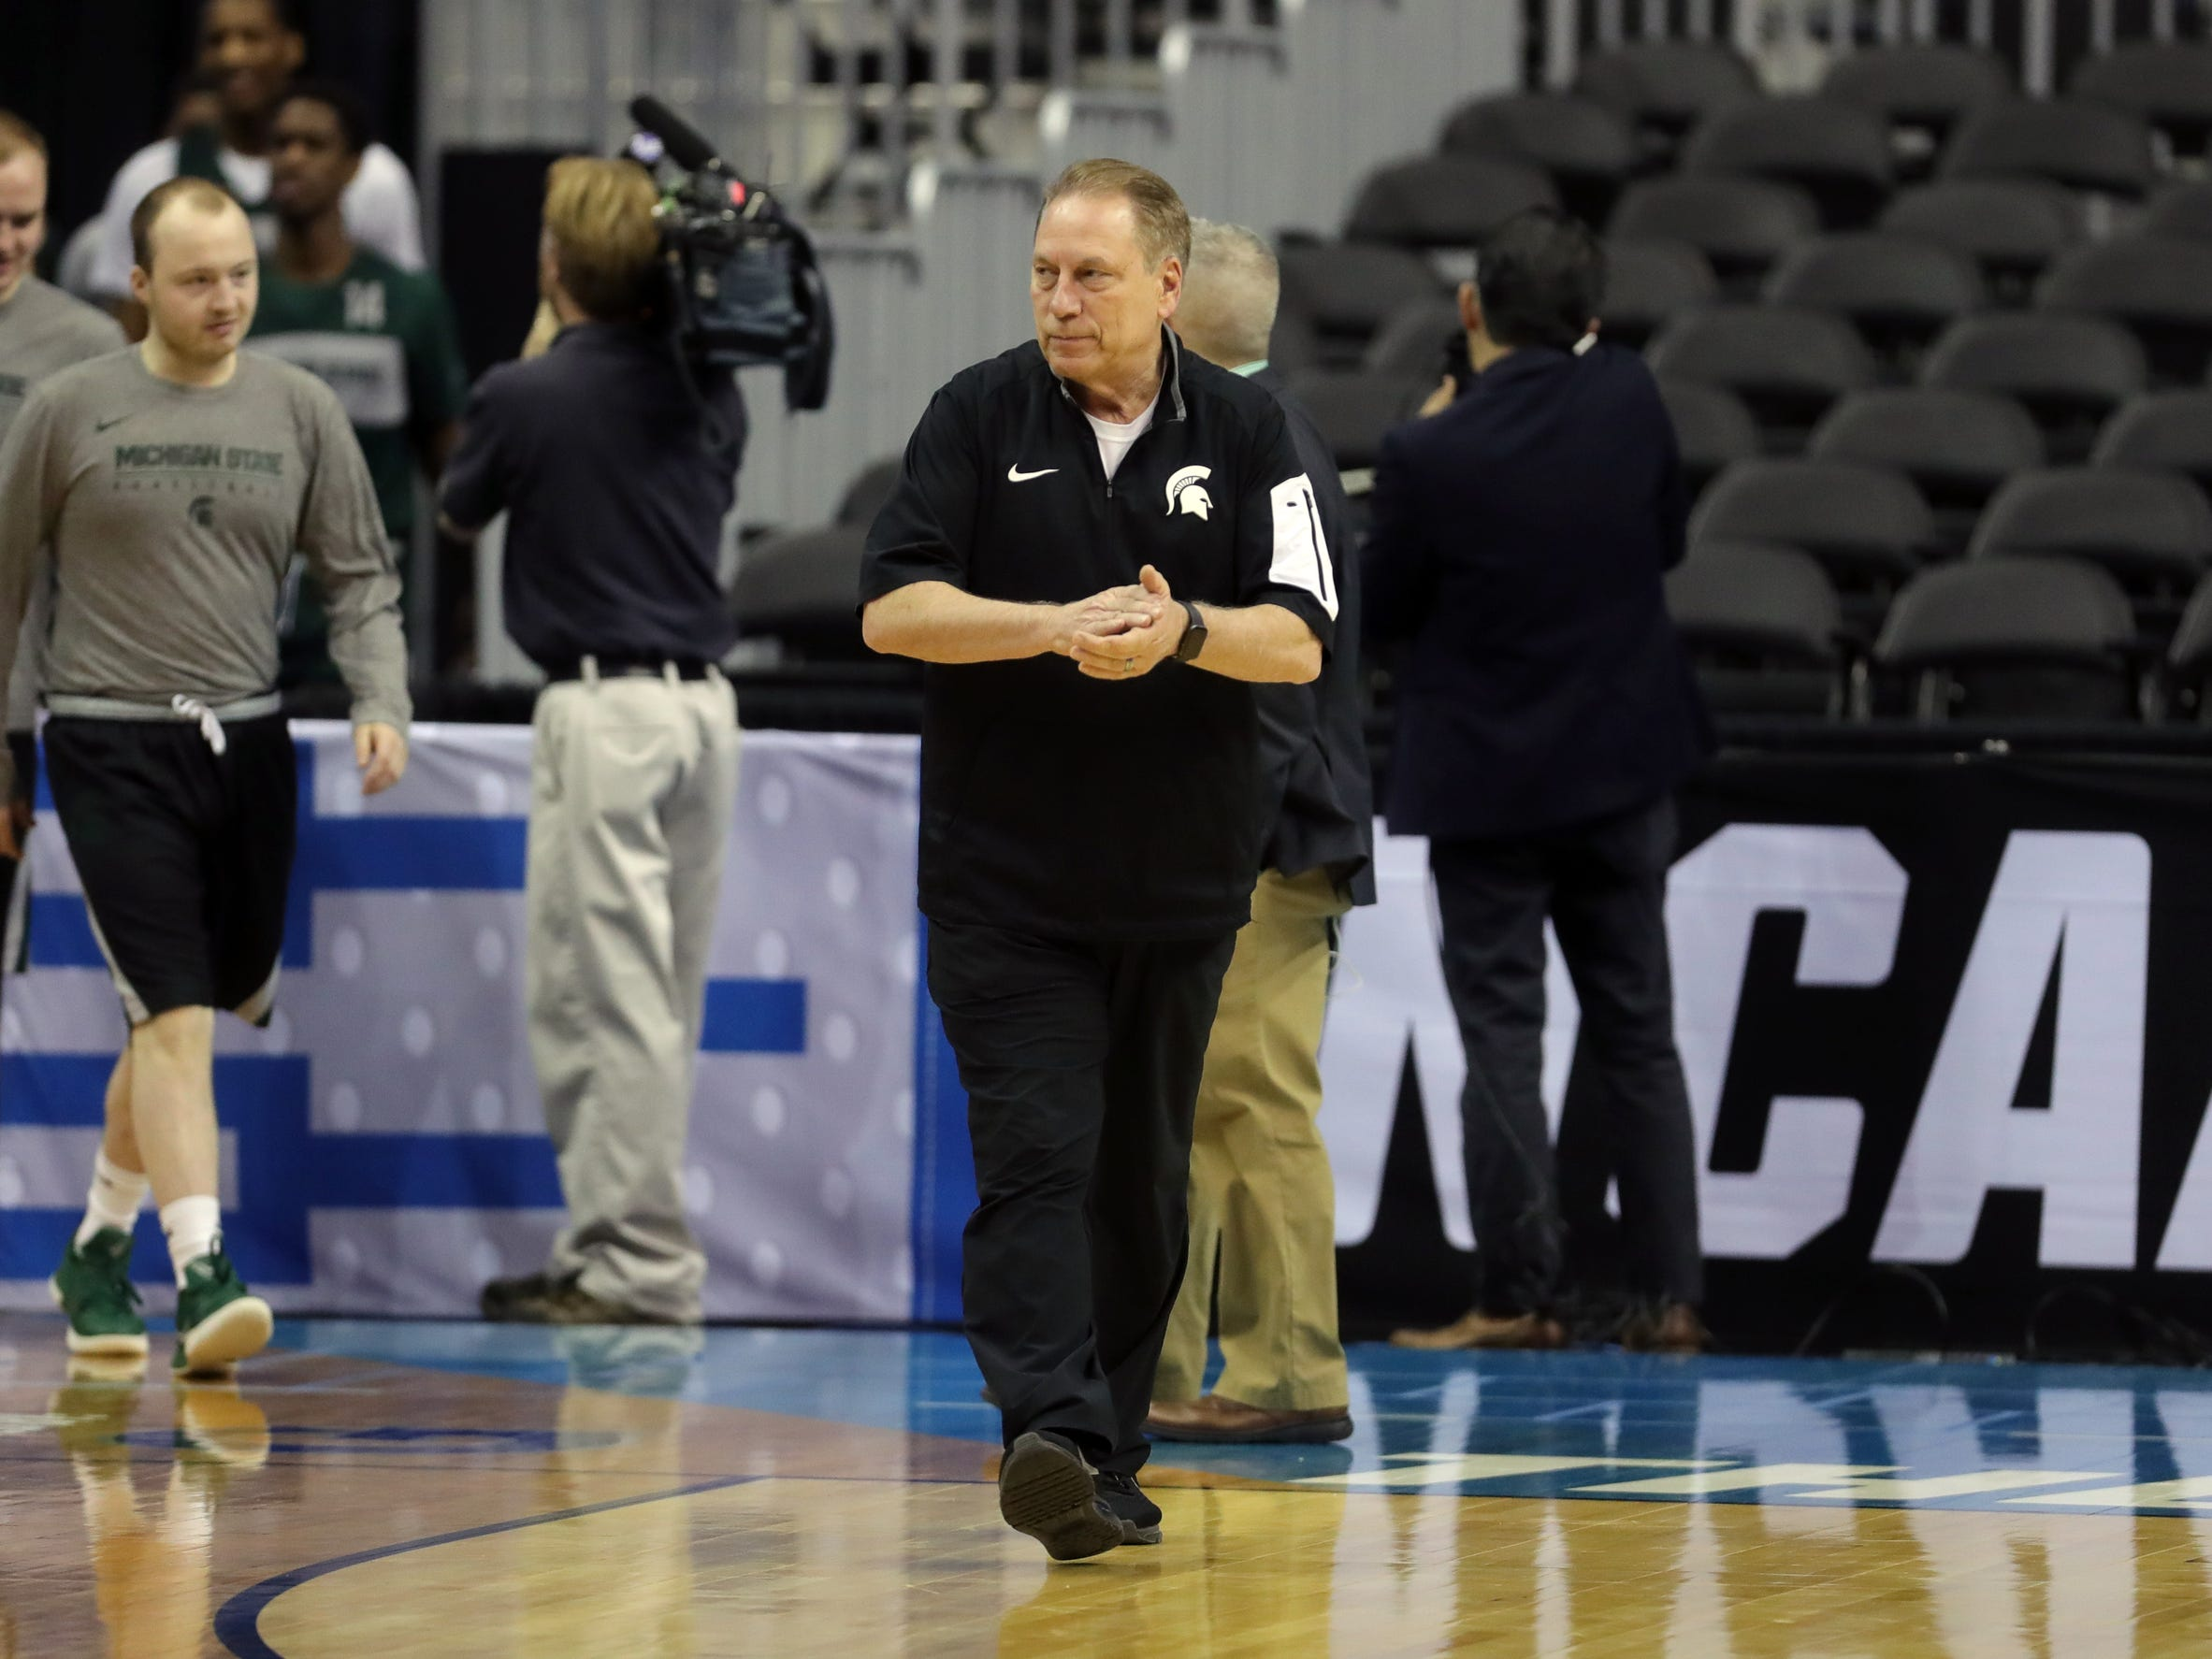 Michigan State head coach Tom Izzo watches his team practice before their Sweet 16 game against LSU, Thursday, March 28, 2019 at the Capital One Arena in Washington, D.C.